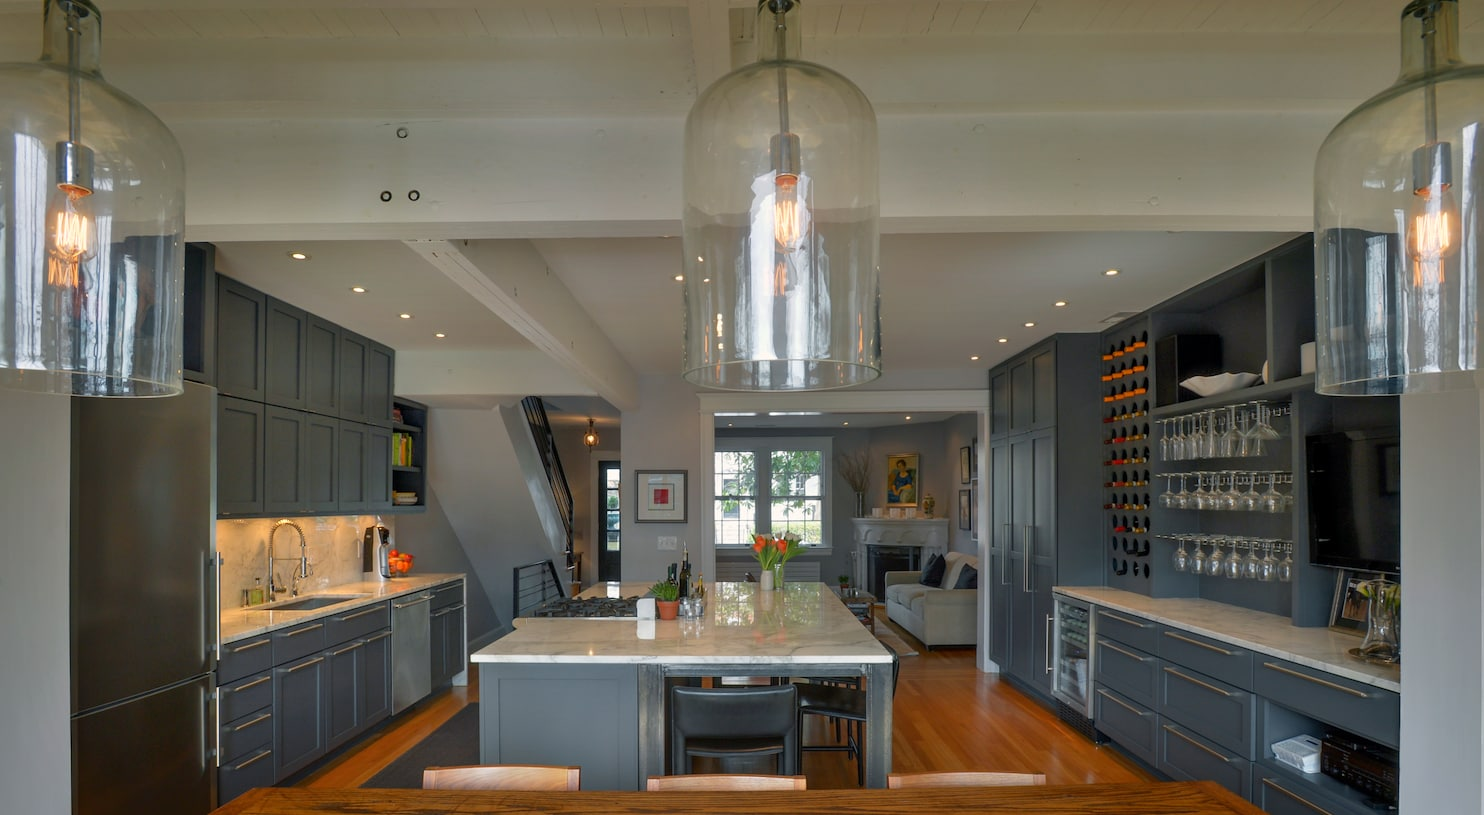 Bringing light and life to a rowhouse kitchen  The